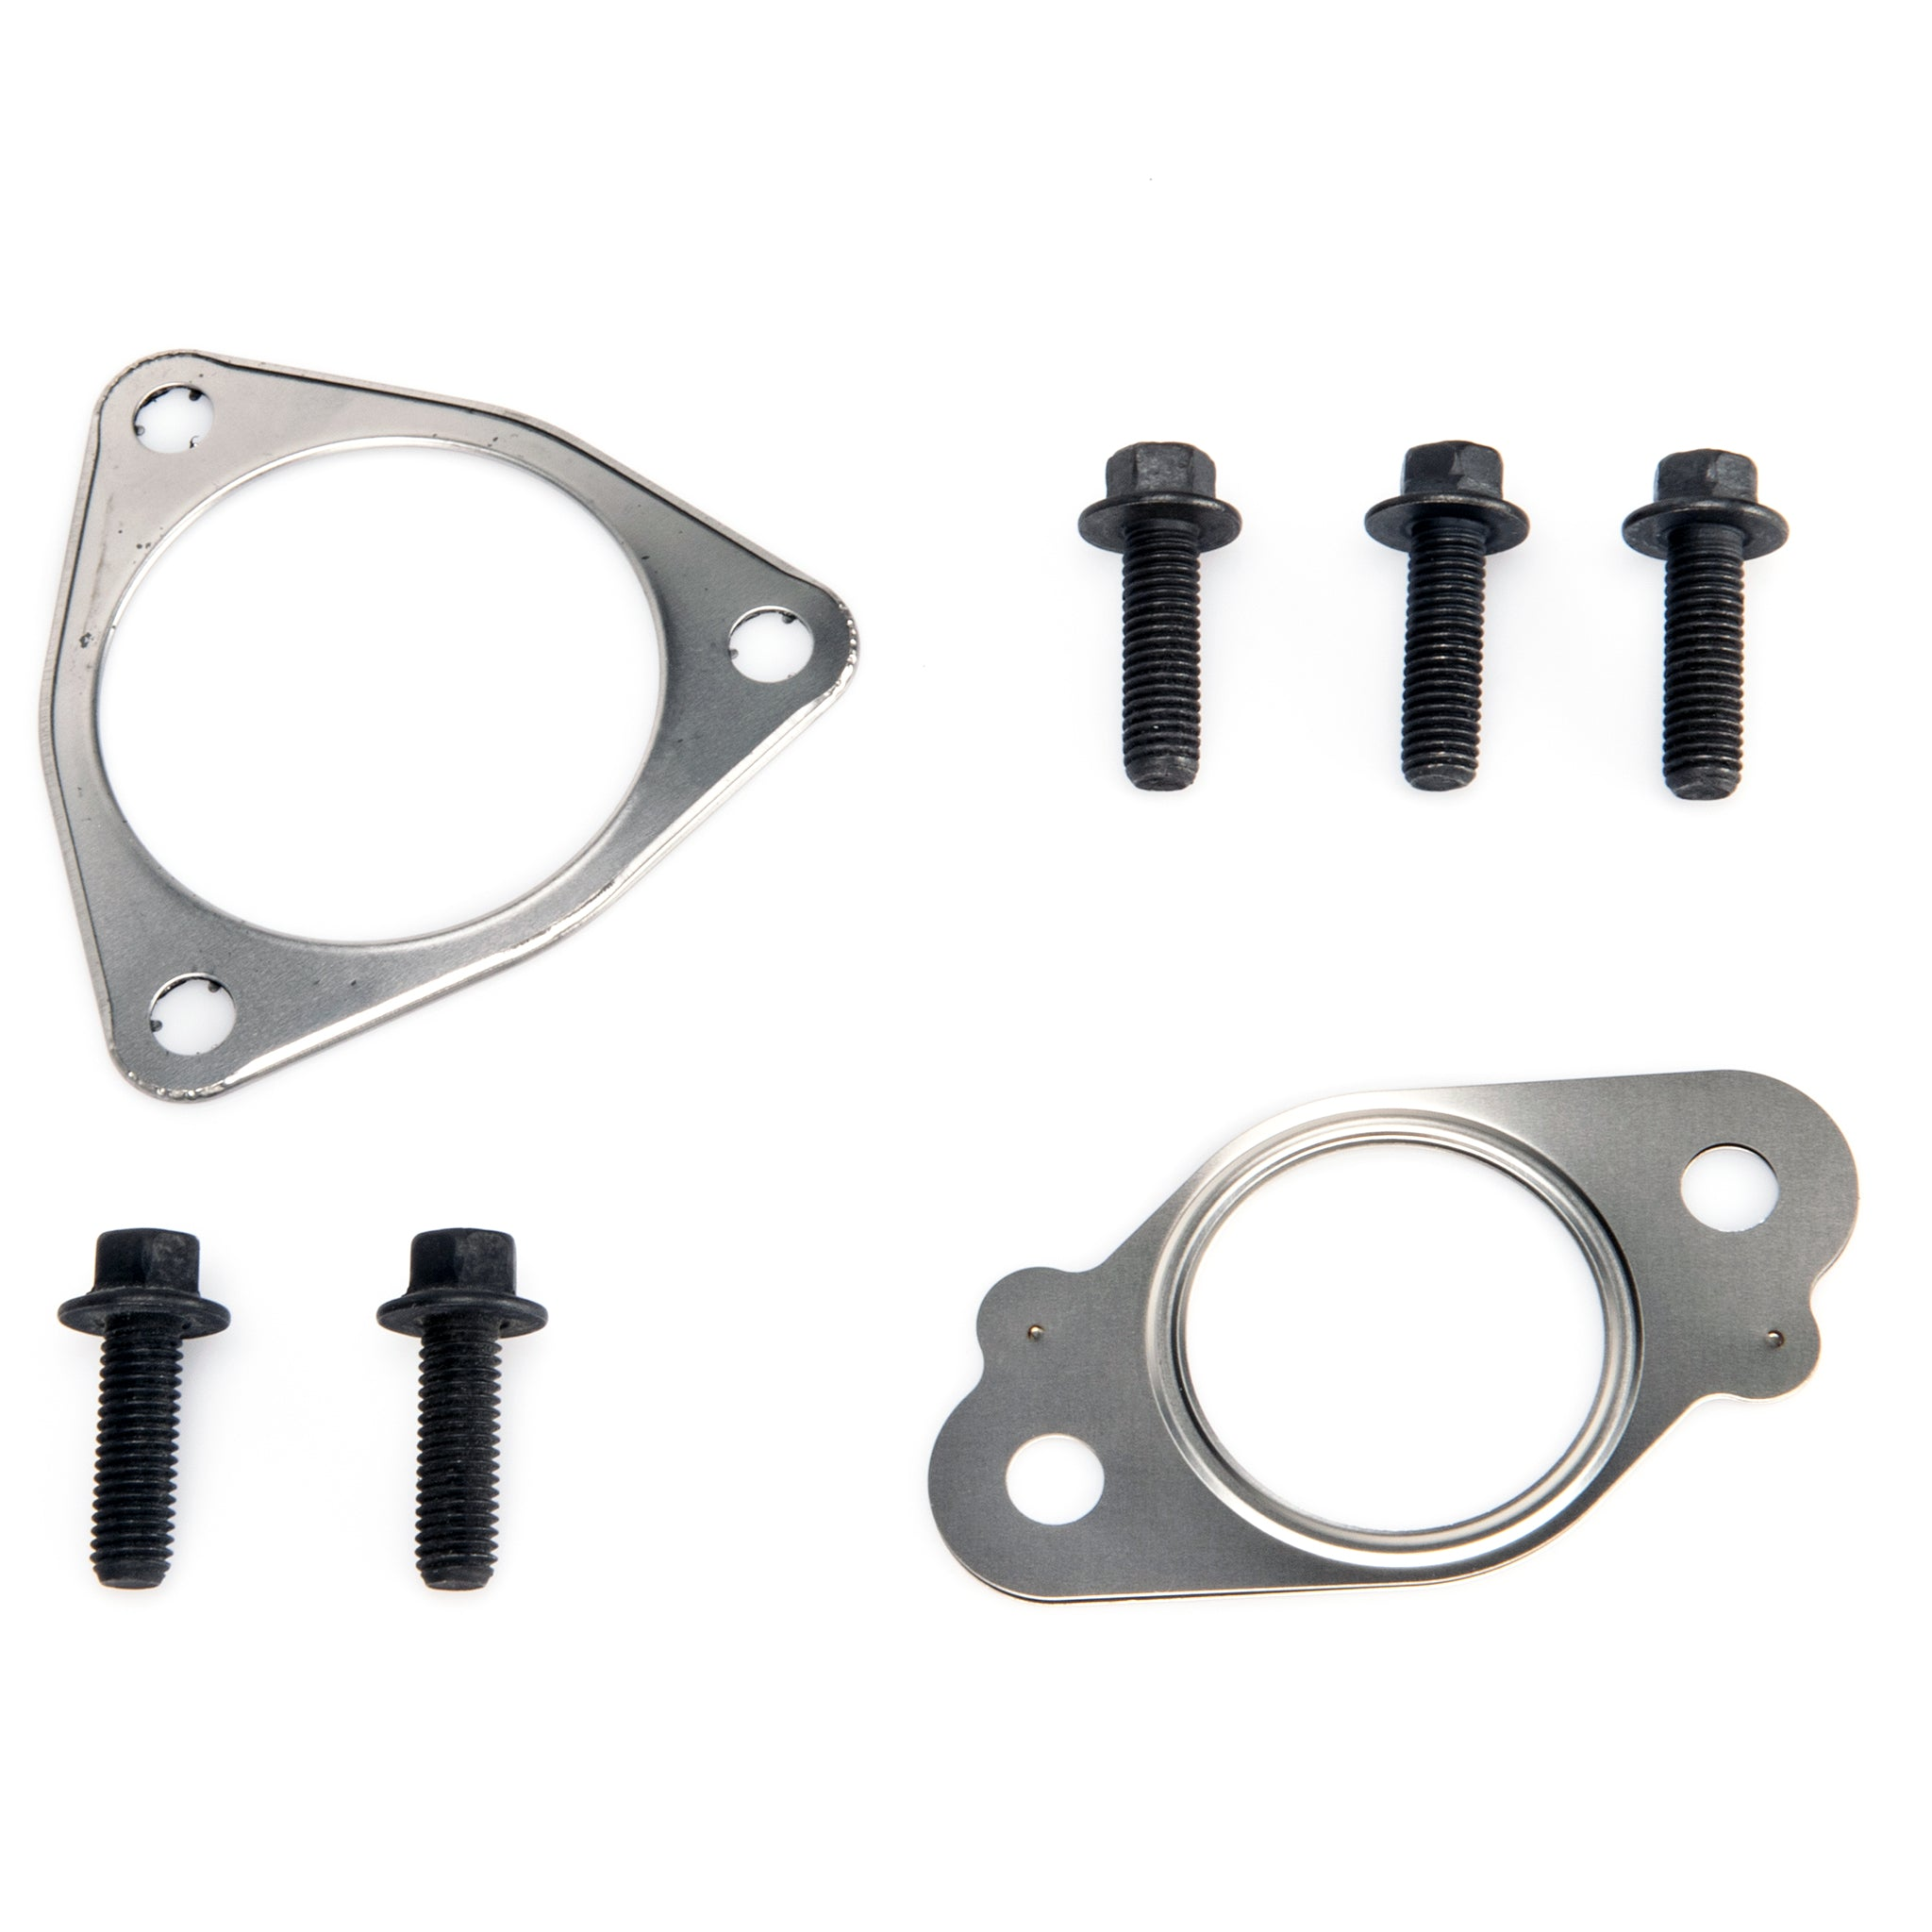 EGR Cooler Gasket Set, Maxxforce 7